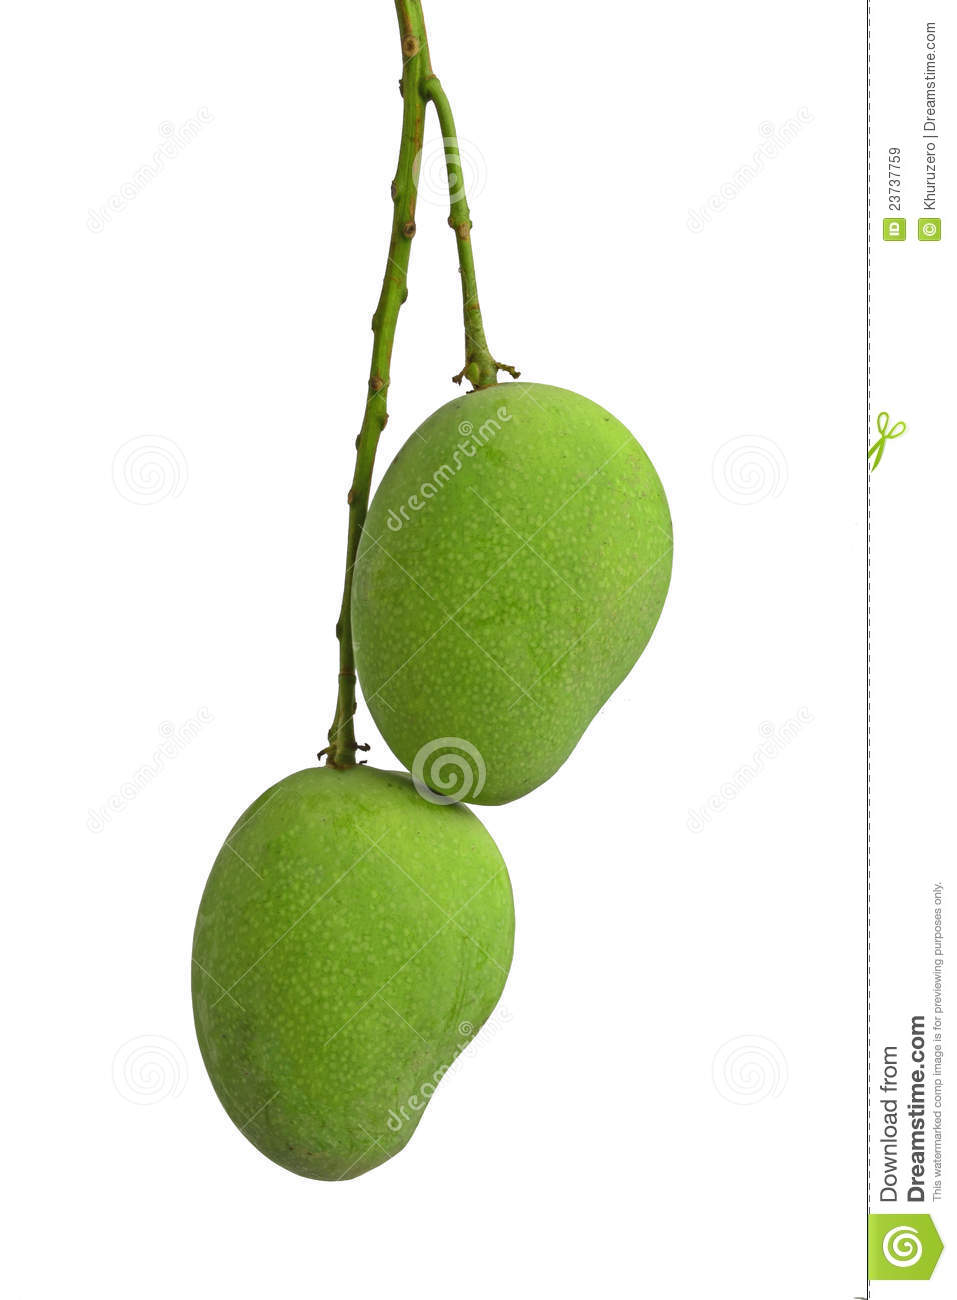 Green Mango Royalty Free Stock Images - Image: 23737759